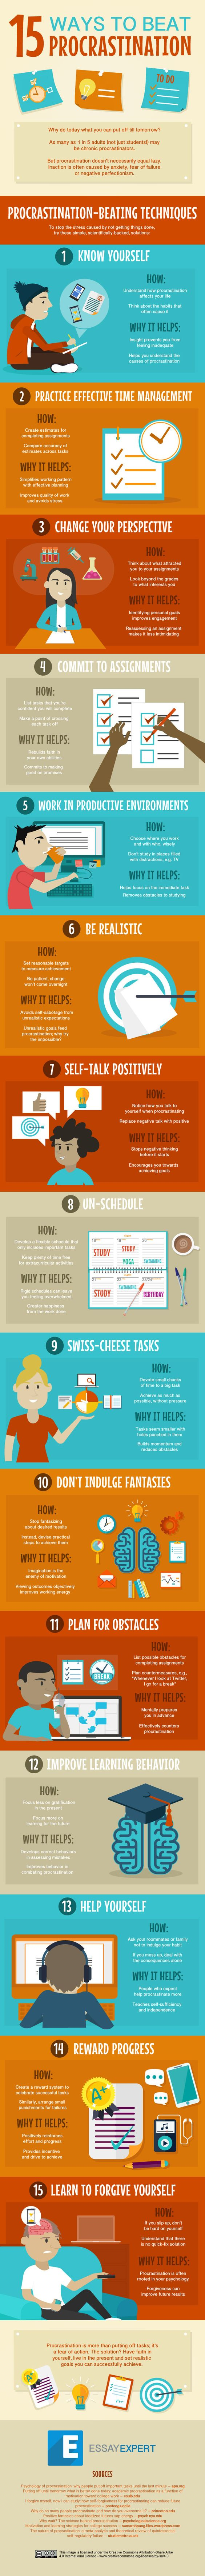 15 Ways to Beat Procrastination #infographic #Procrastination